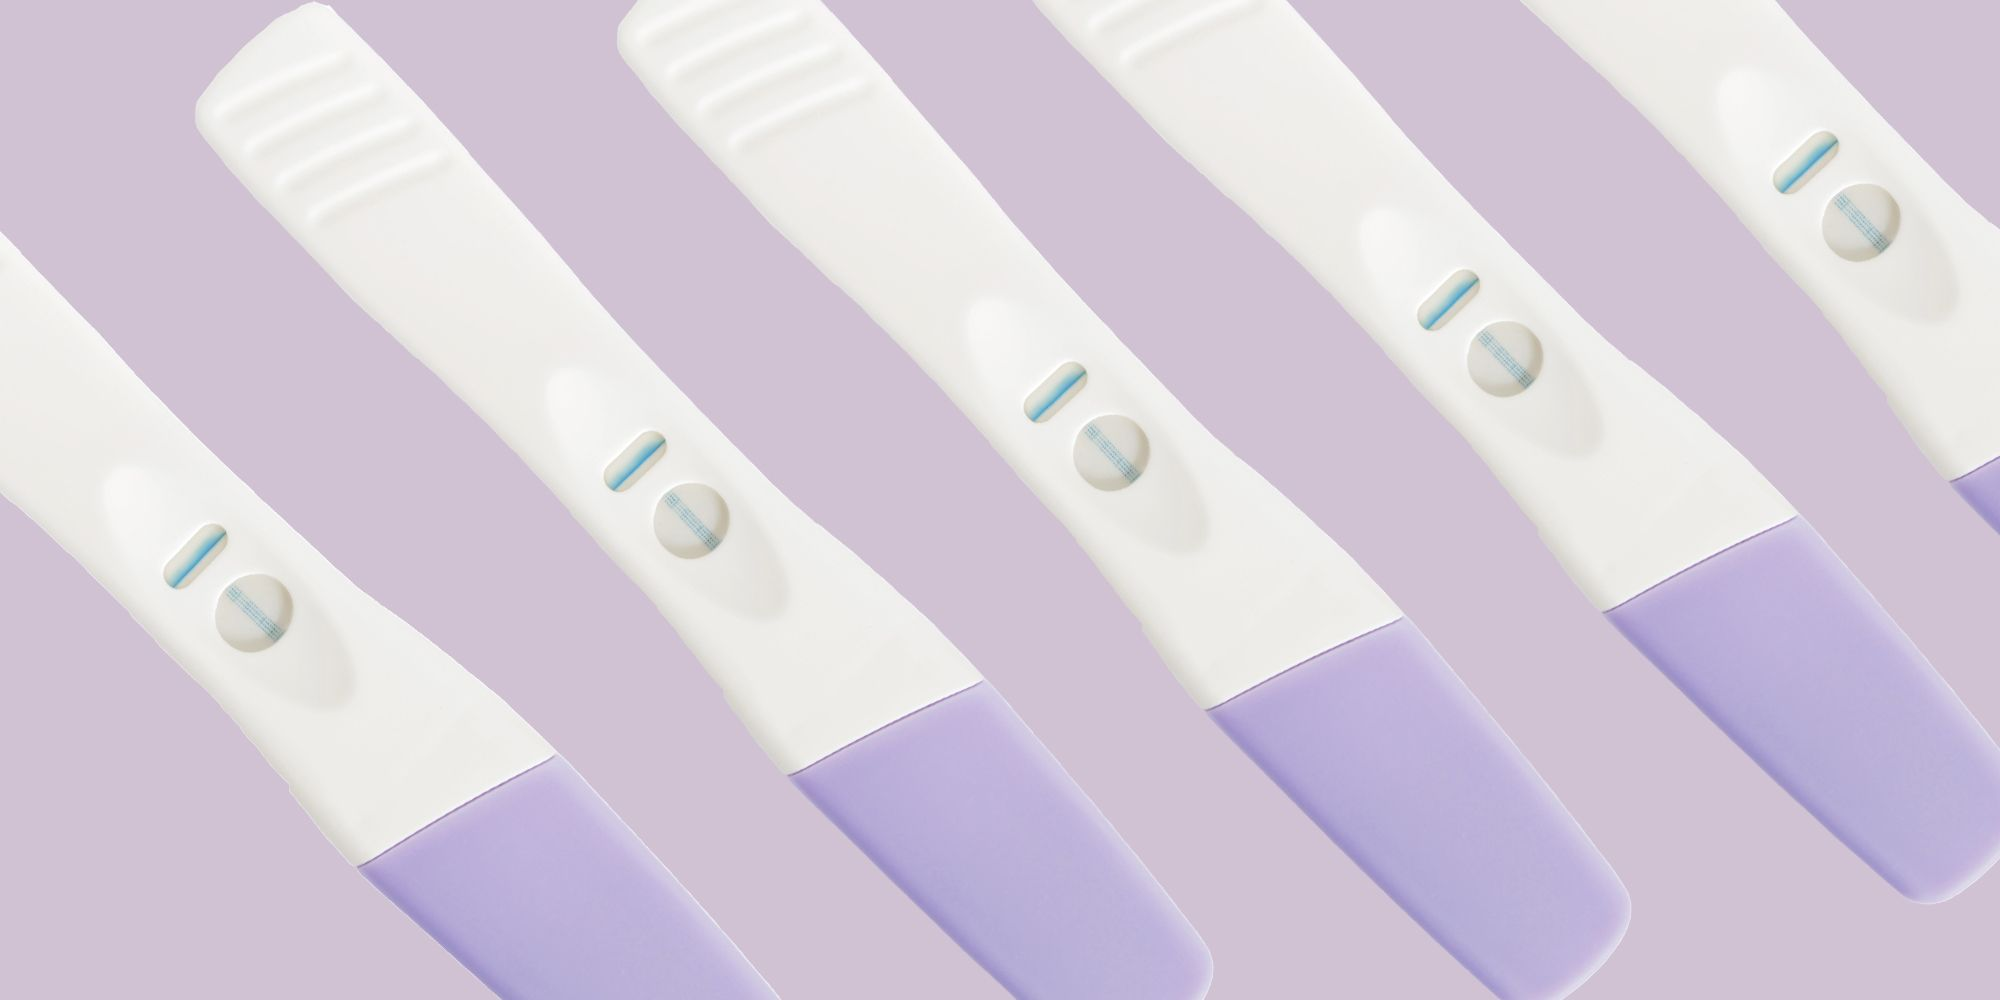 8 reasons your pregnancy test might be showing the wrong result